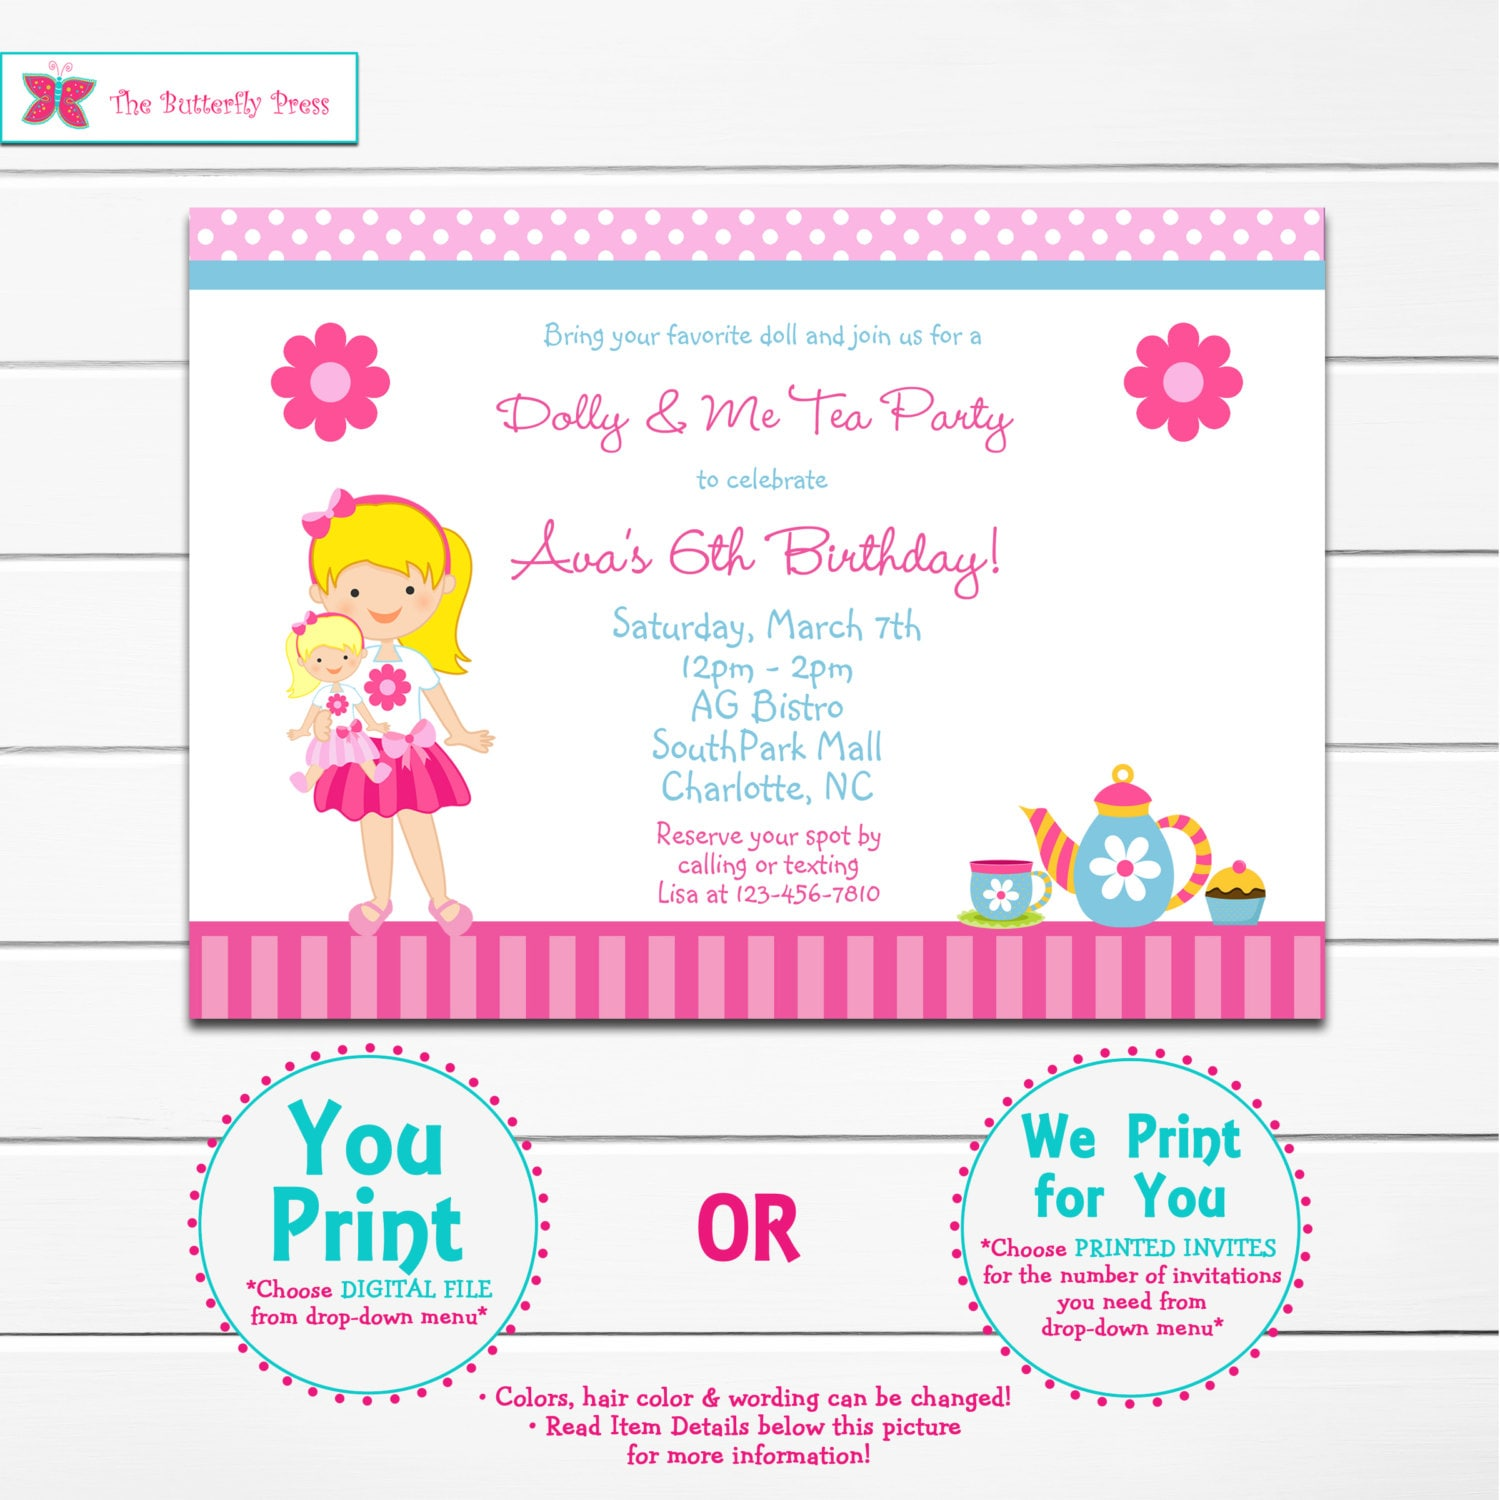 Pink Credit Card Invitations Mall party invitation examples